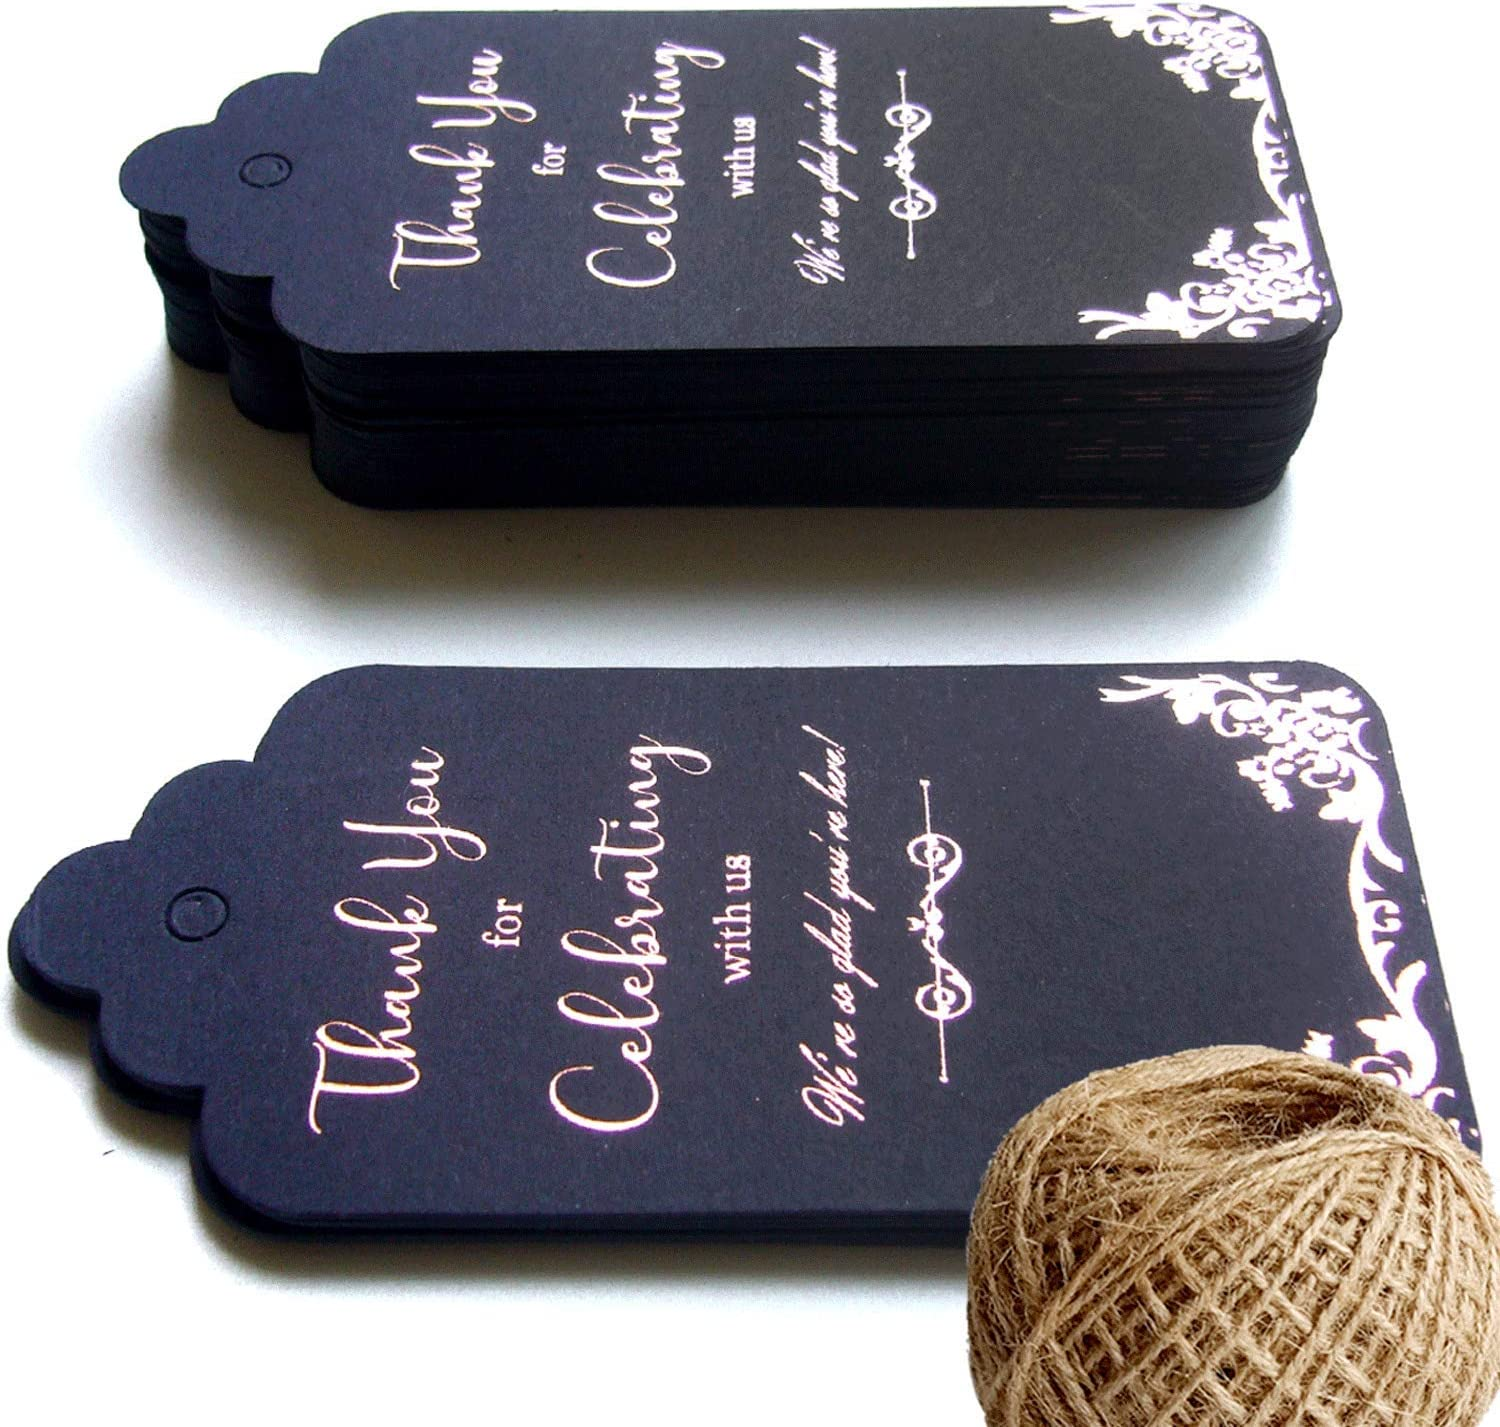 100 Deep Blue Thank You Tags for Favors, Rose Gold Foil Gift Wrap Tags with String (328 Feet Twine) Thank You for Celebrating with Us Tags for Wedding Favors, Bridal Shower, Baby Shower, Party Favors